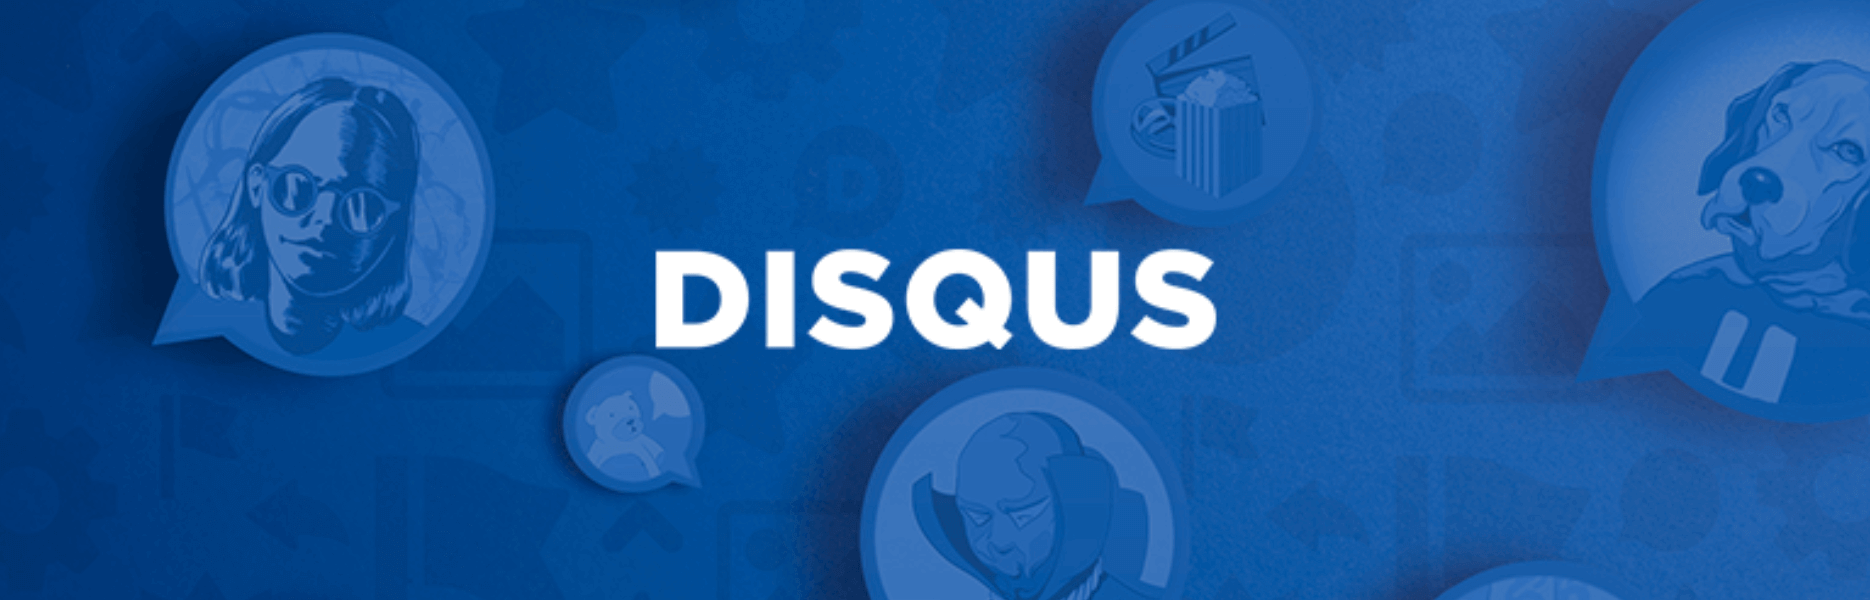 disqus comment system wp plugin